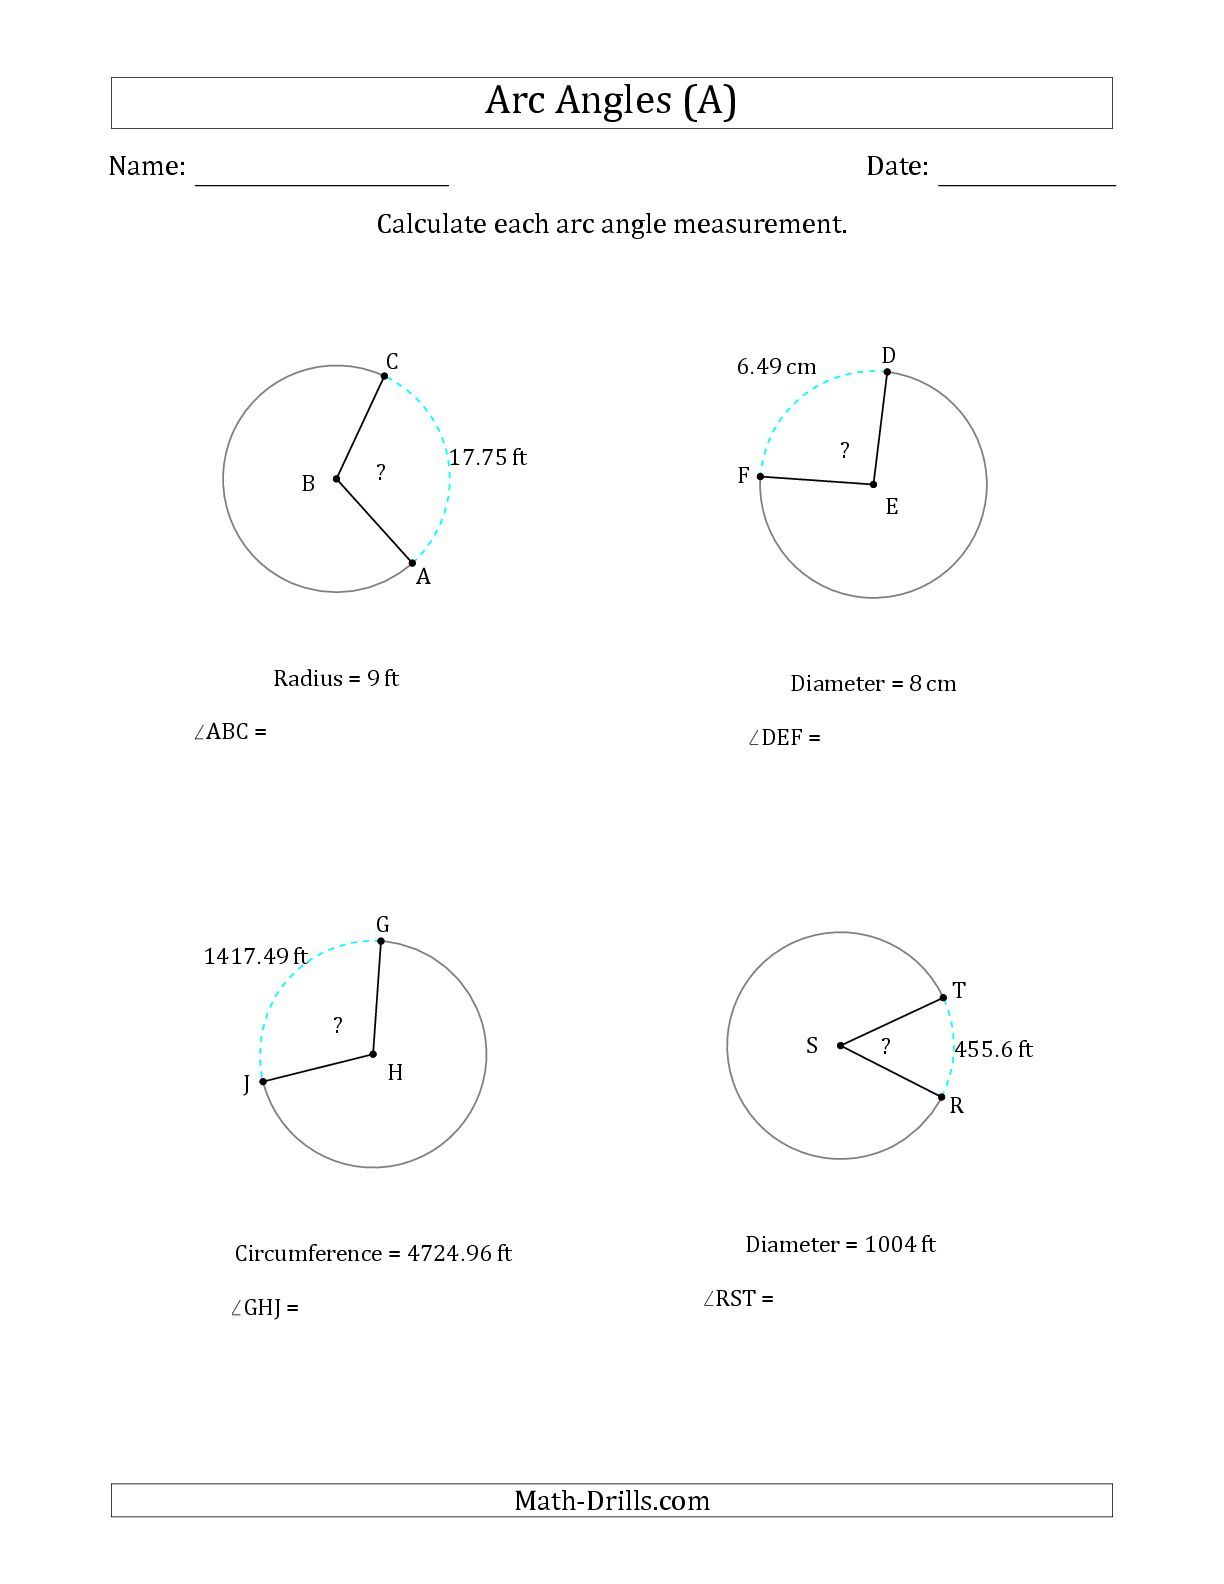 The Calculating Circle Arc Angle Measurements From Circumference Radius Or Diameter A Math